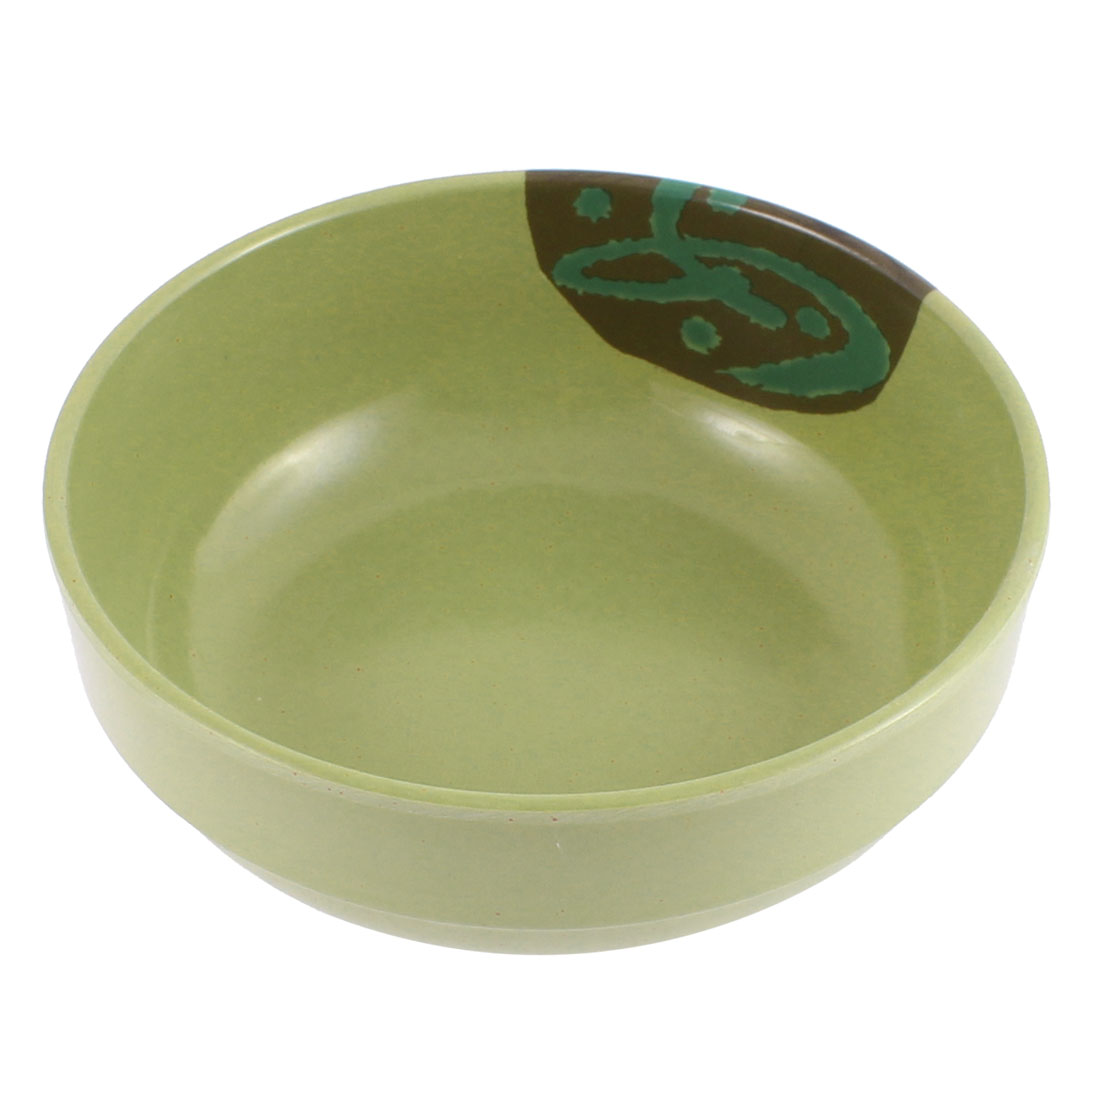 "Restaurant Home Rice Soup Salad Container Bowl Green 6.5"" Dia"